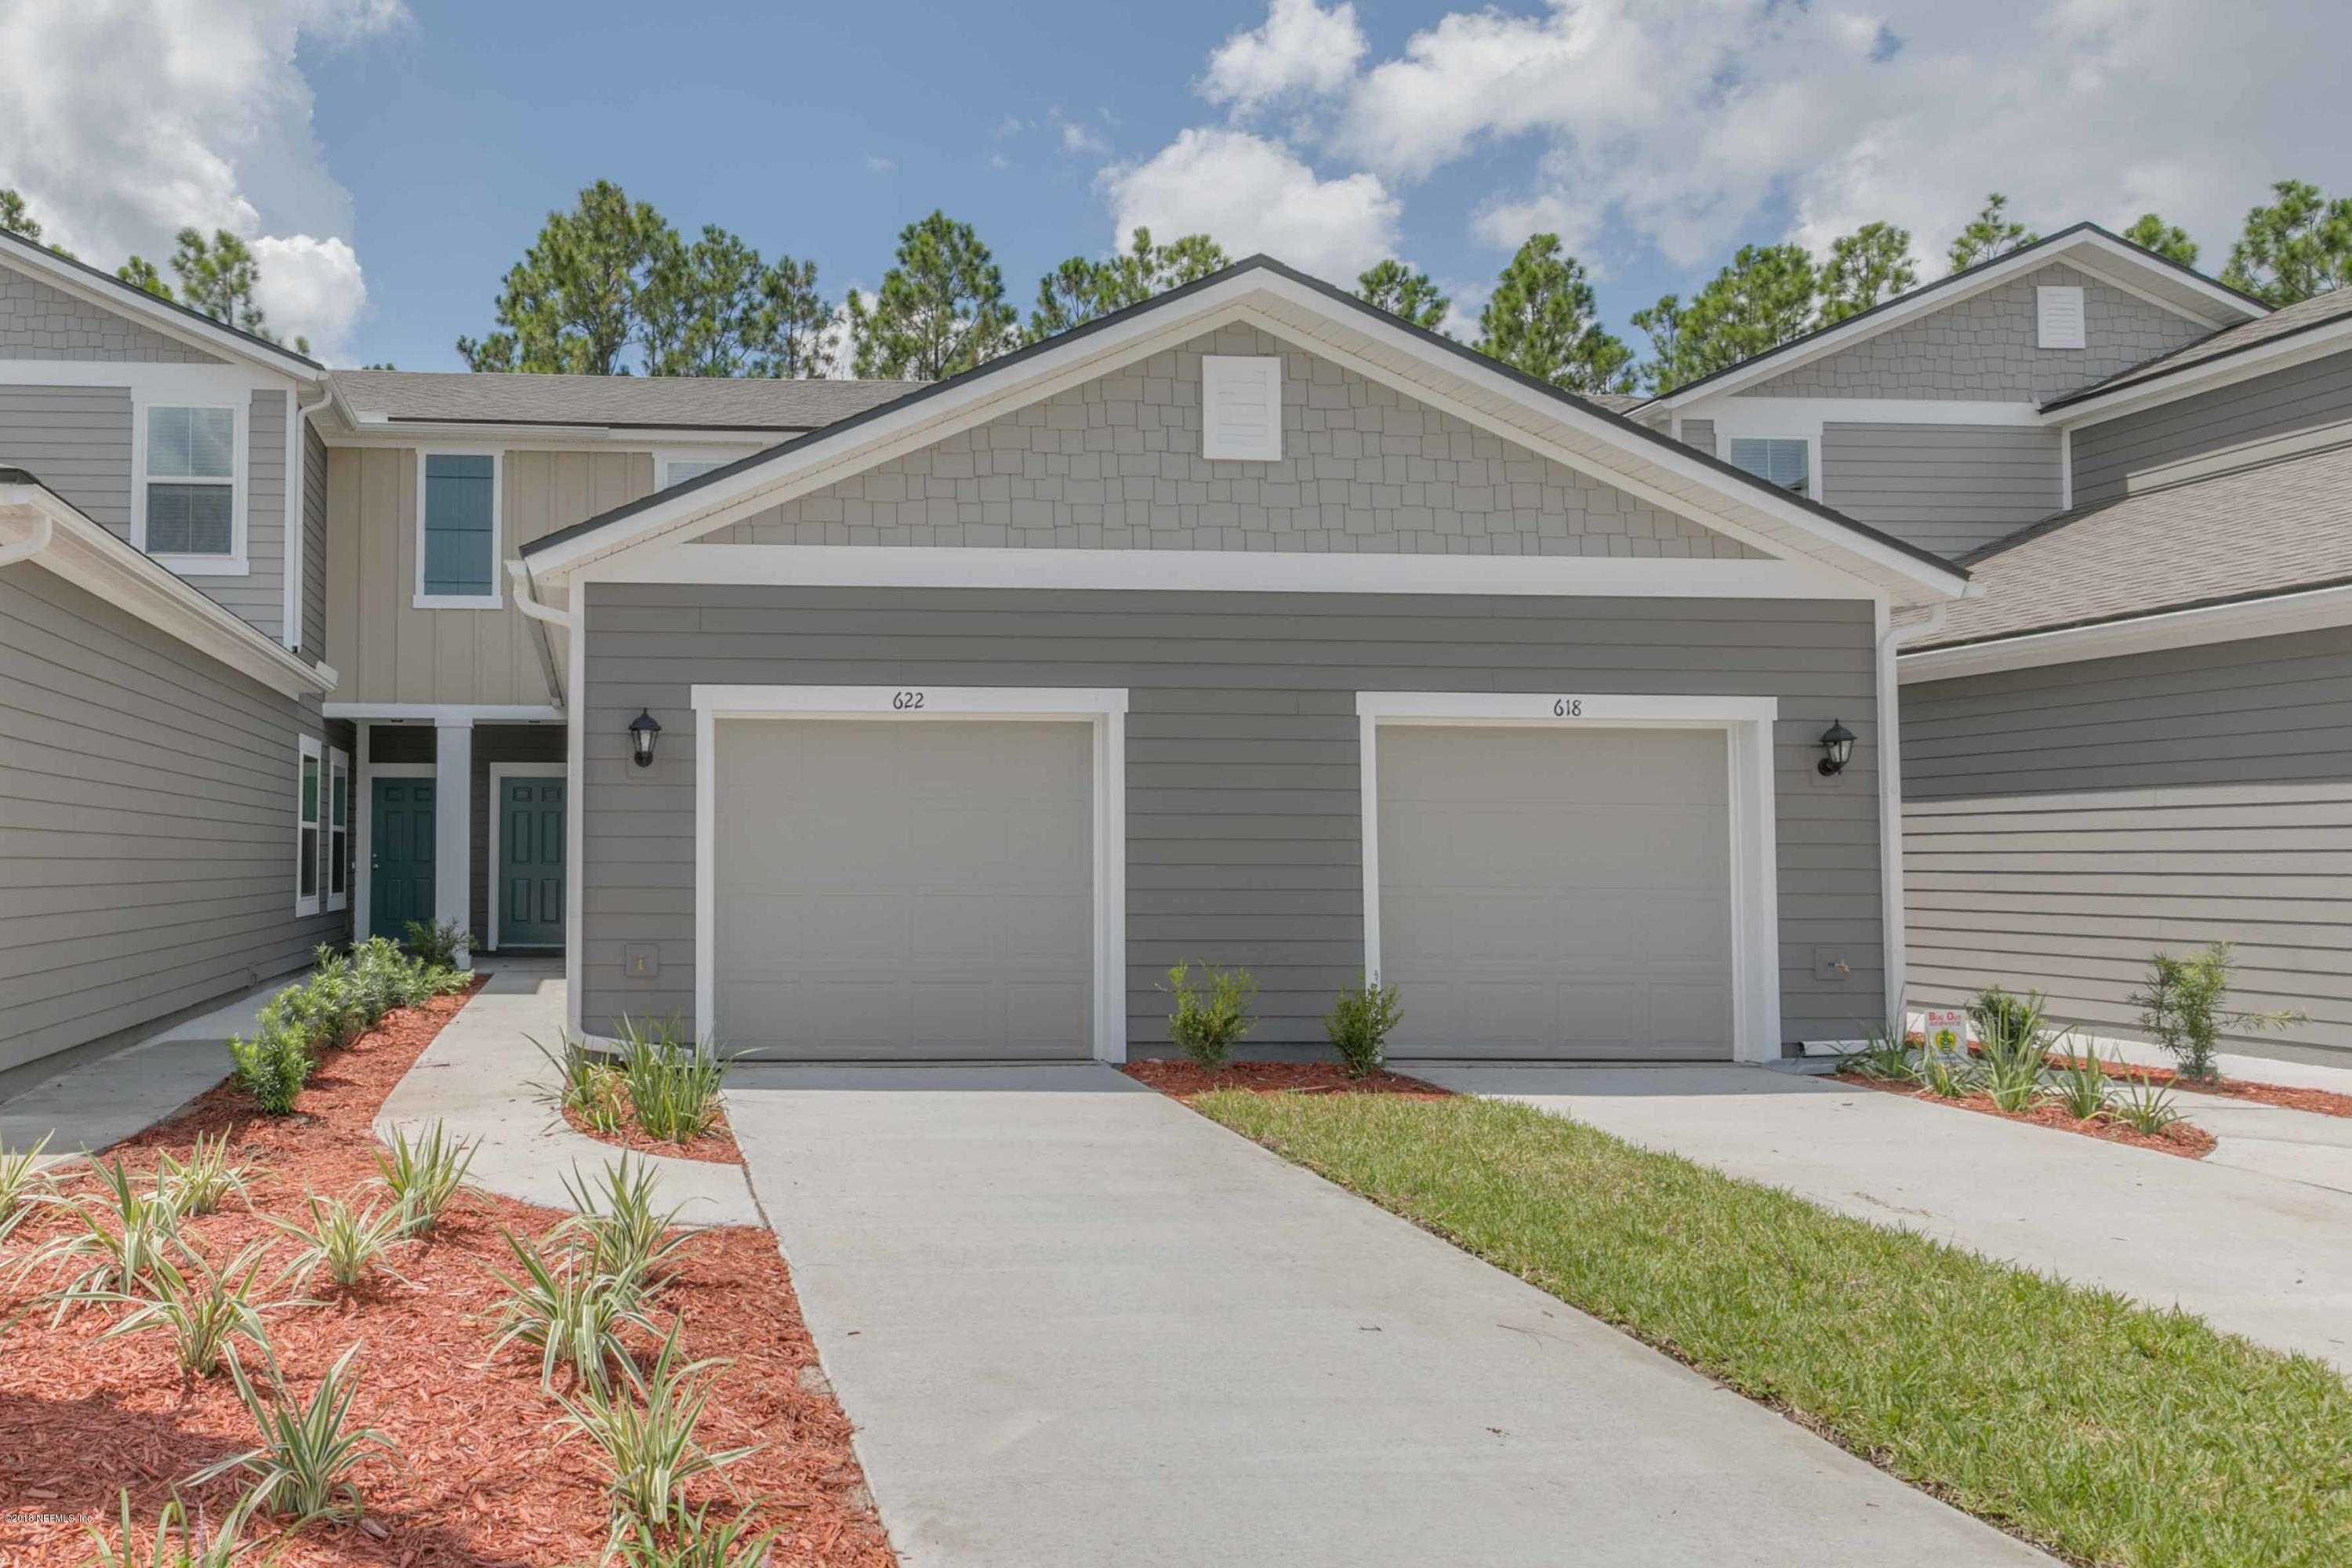 722  SERVIA DR, Saint Johns in ST. JOHNS County, FL 32259 Home for Sale